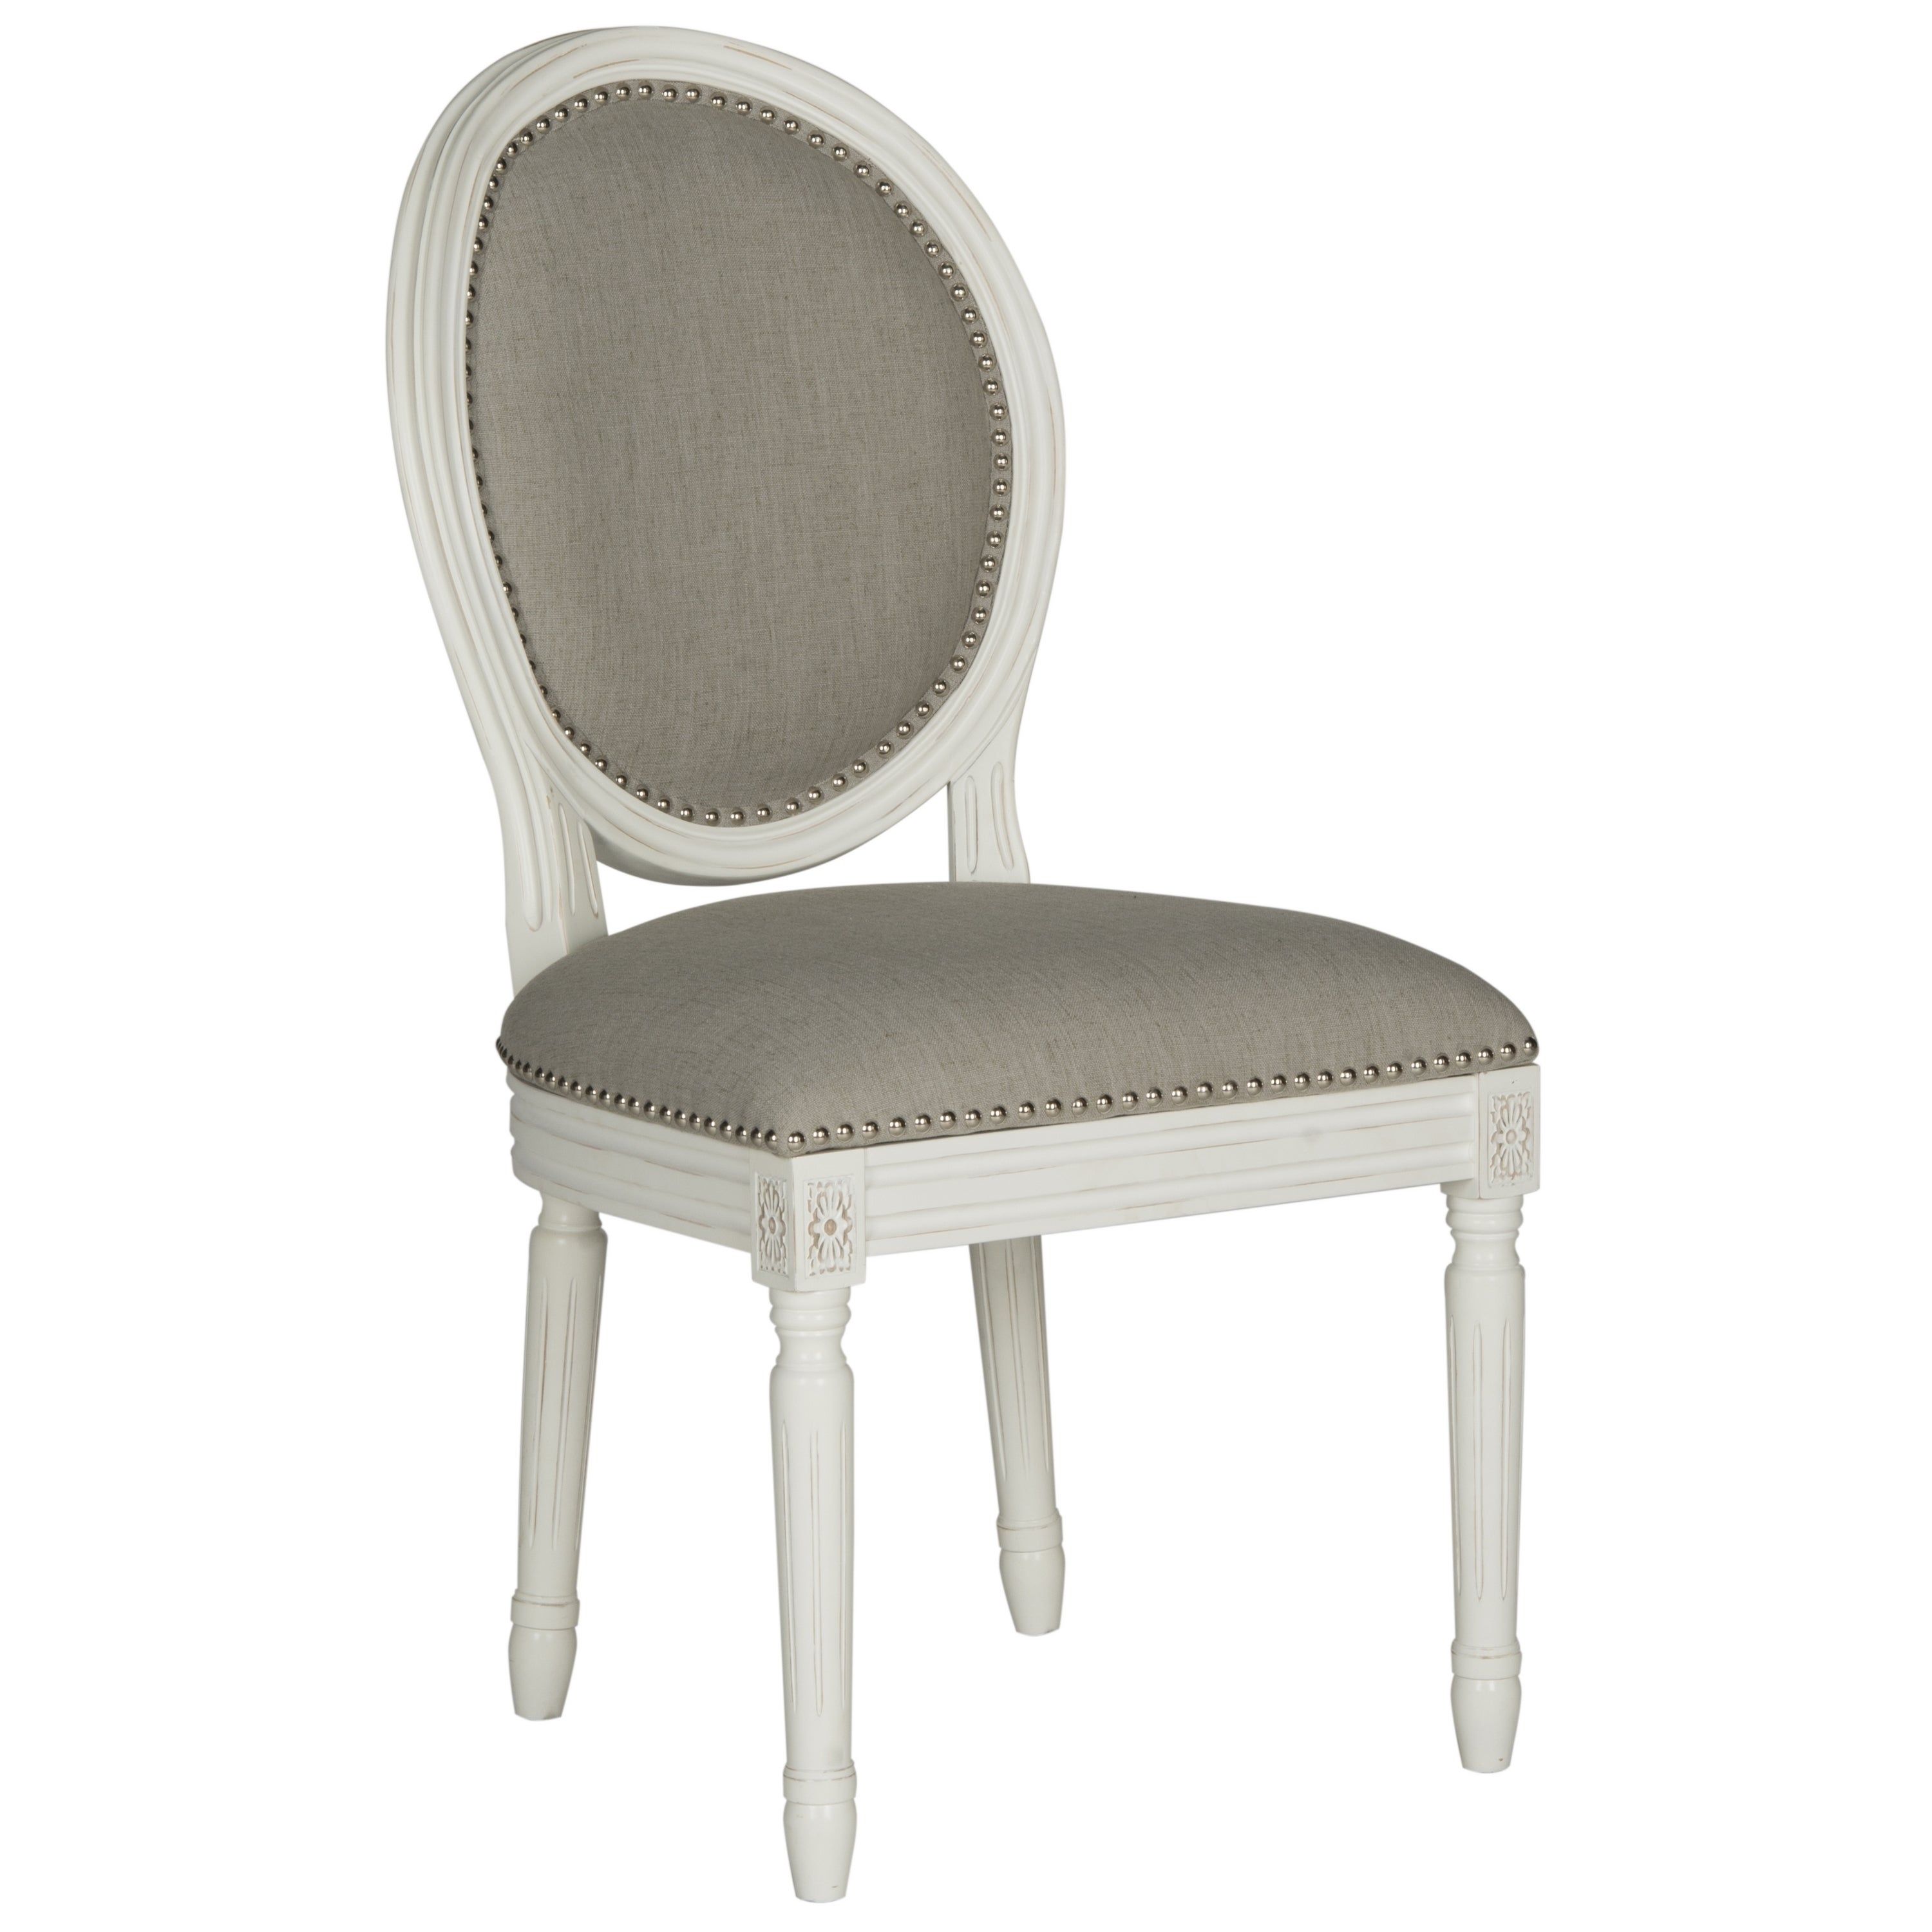 safavieh old world dining holloway light grey oval dining chairs (set of ) free shipping today  overstockcom  . safavieh old world dining holloway light grey oval dining chairs